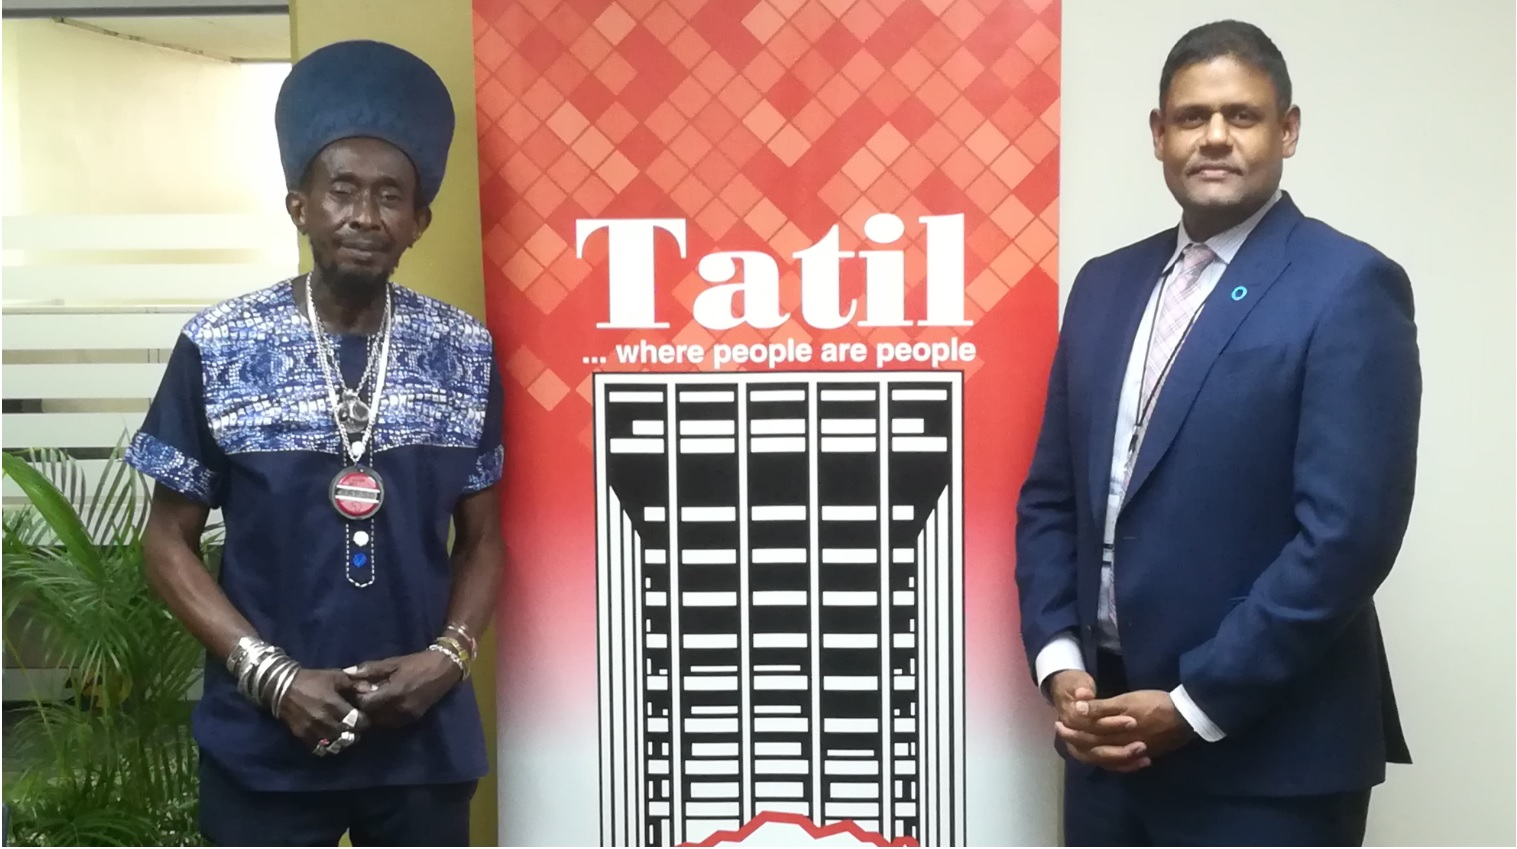 Musa M. Ibrahim - Managing Director, TATIL (right) and